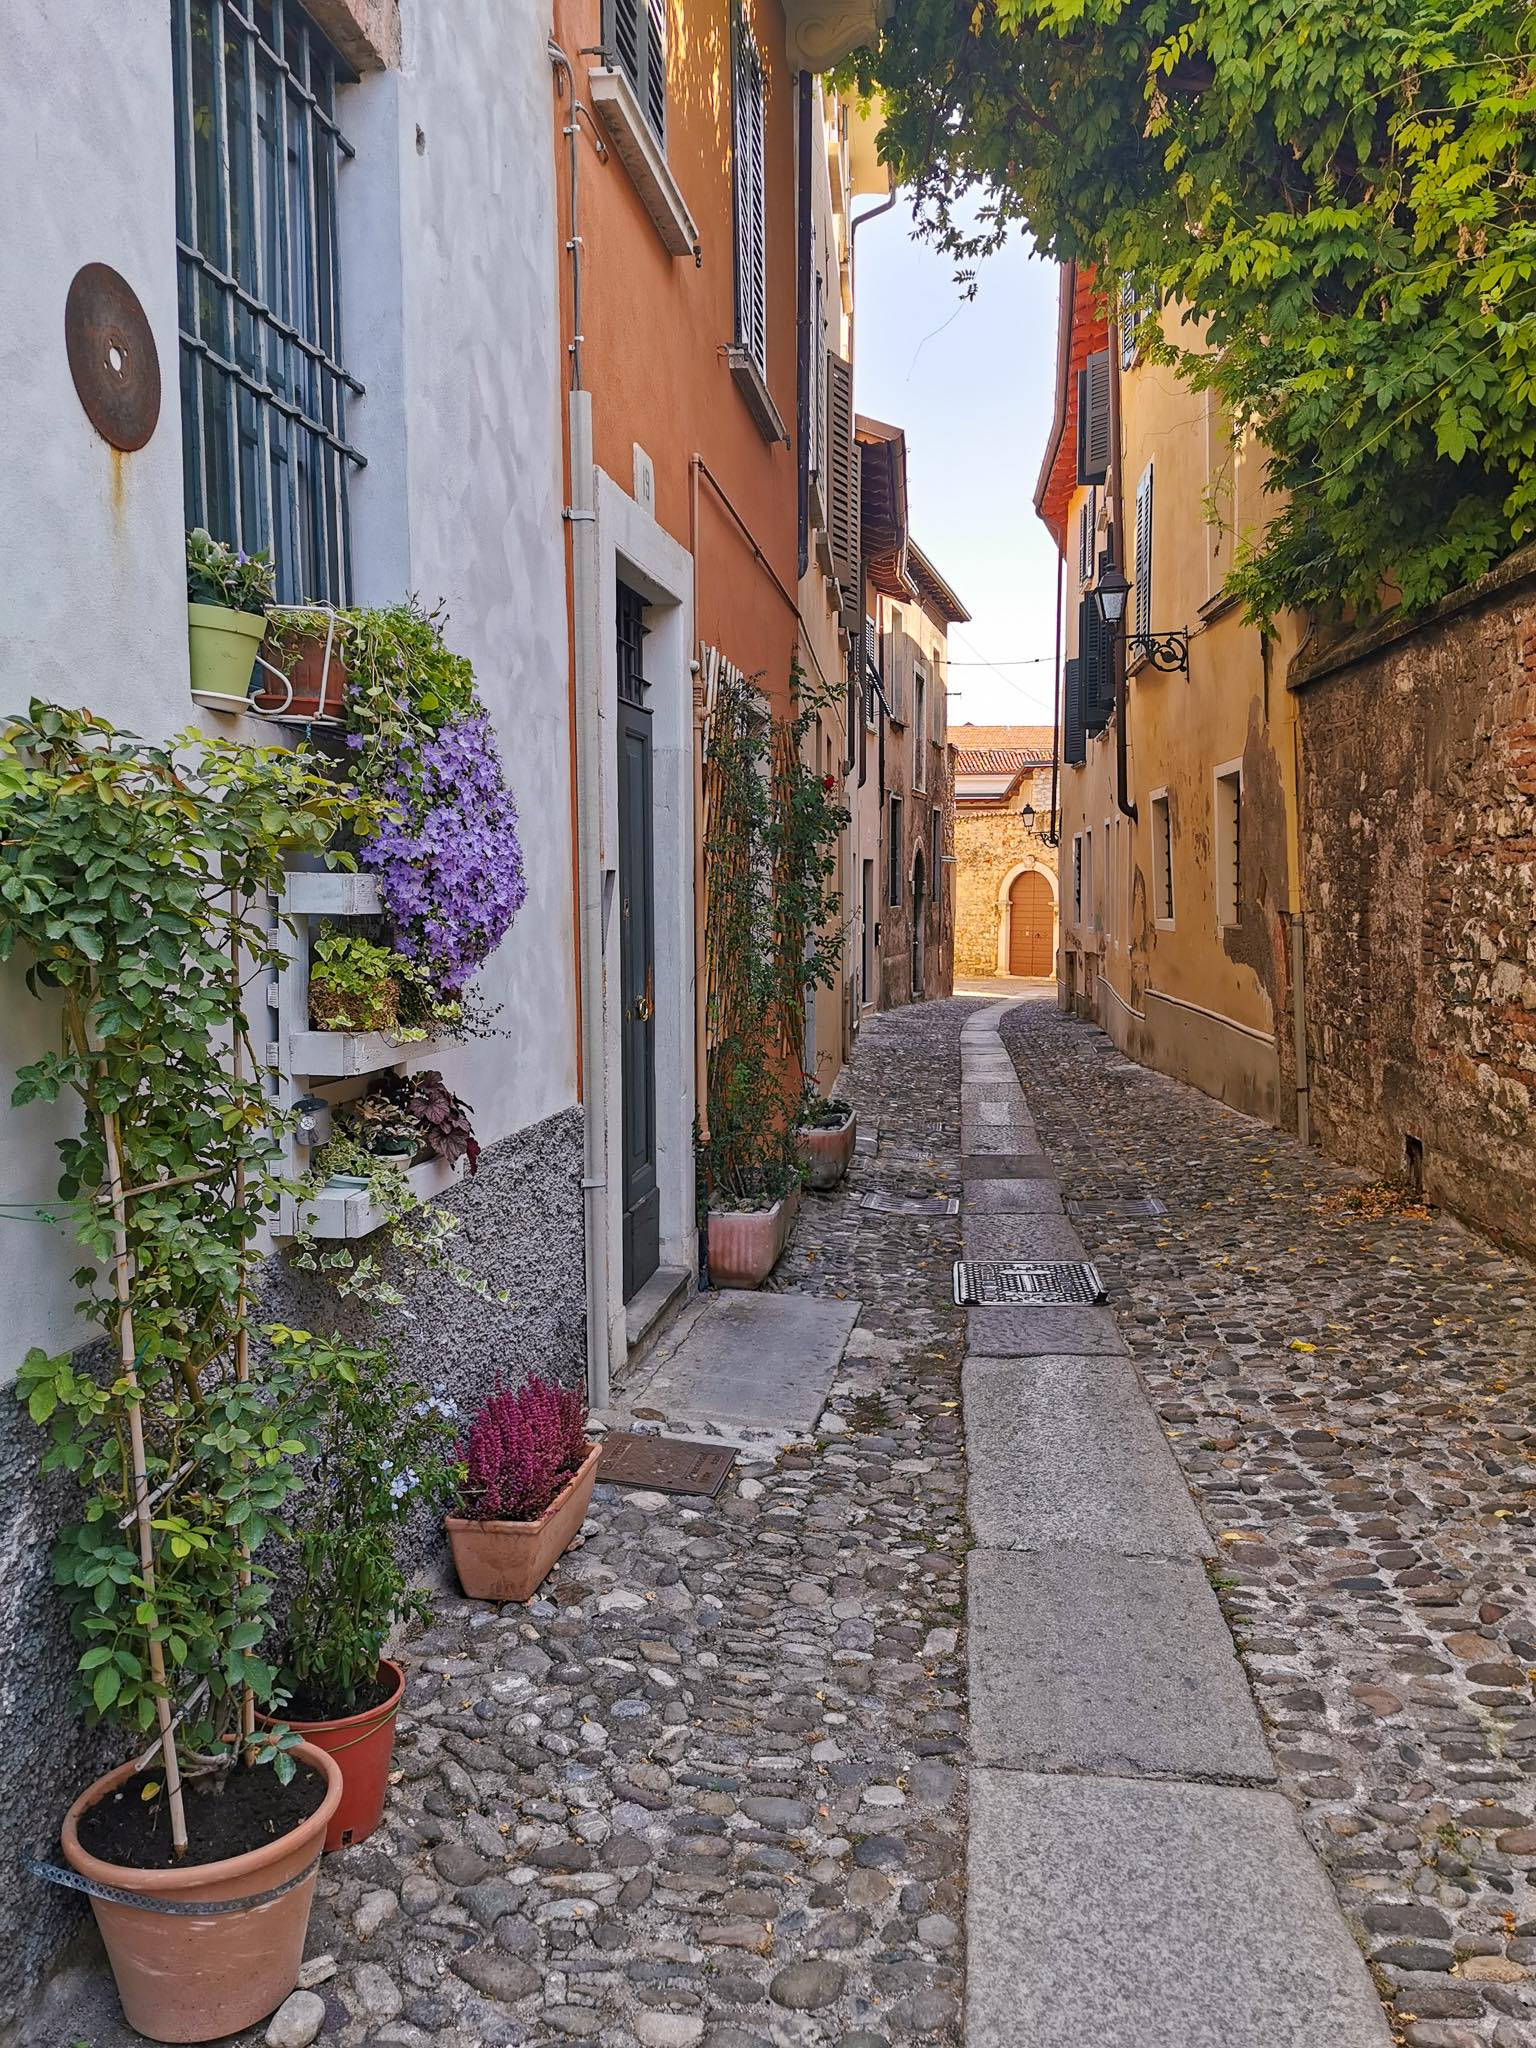 Charming back streets in Brescia